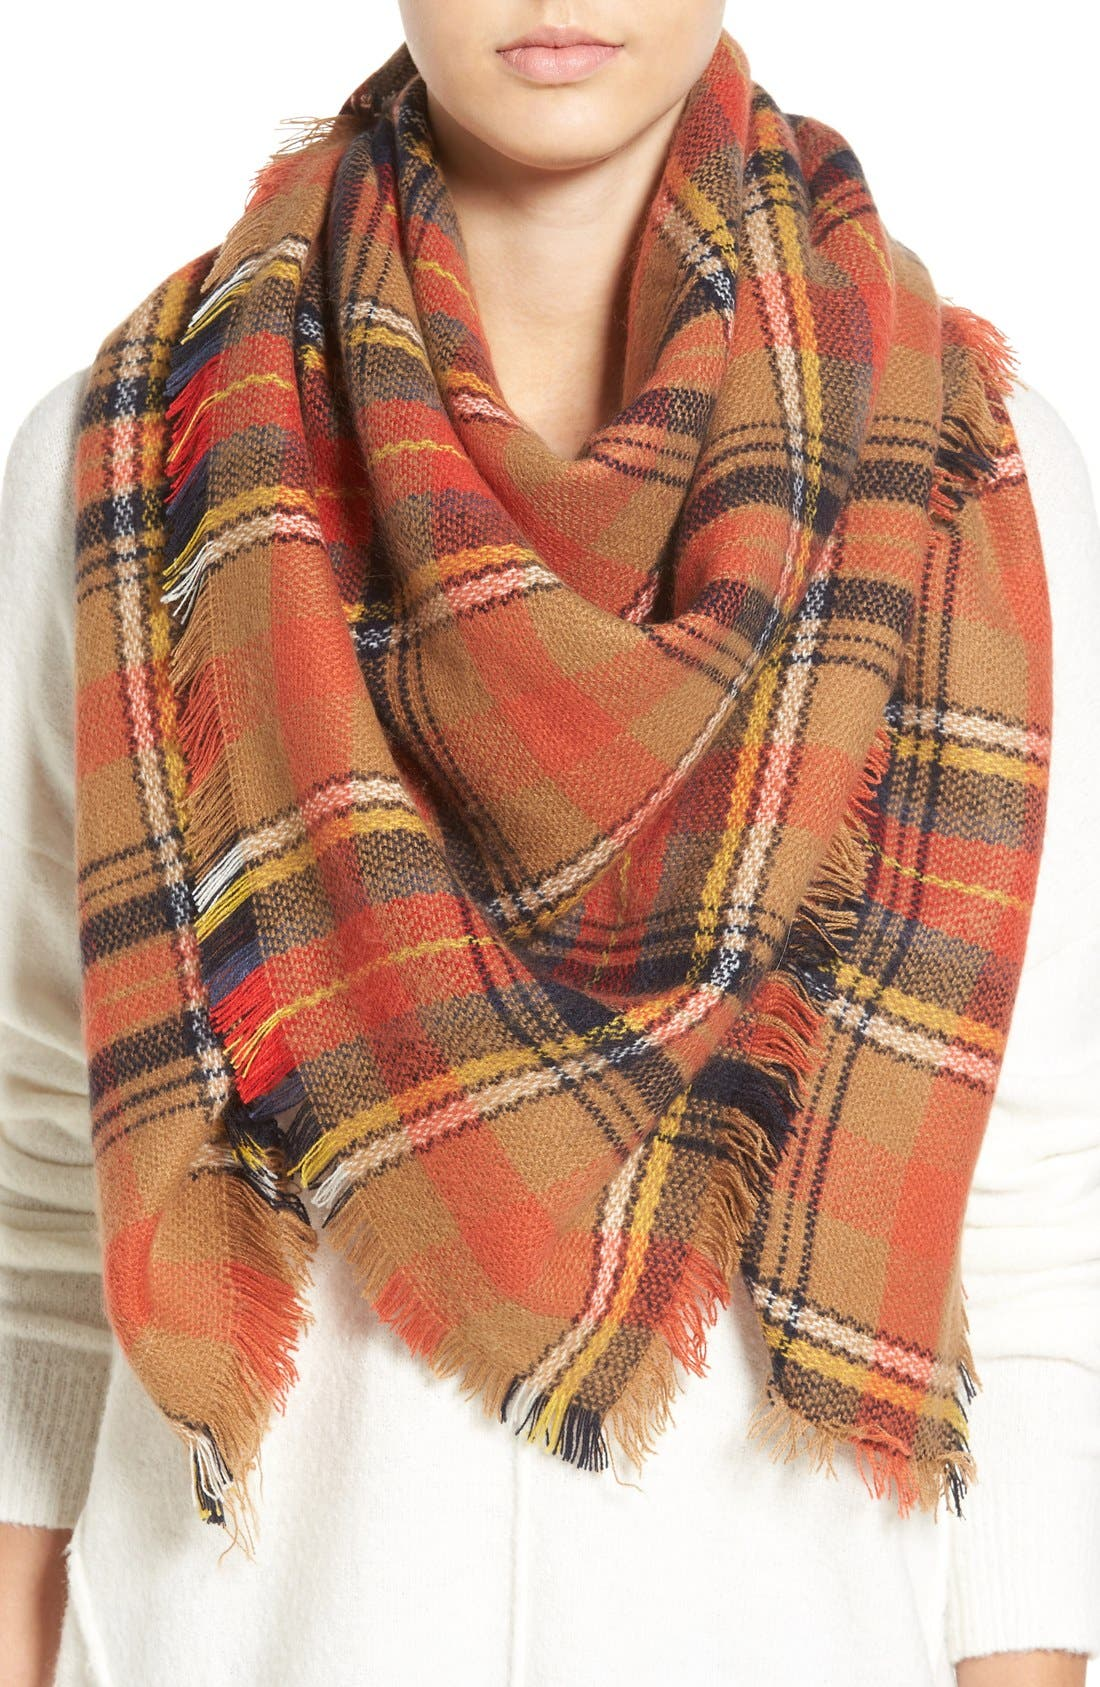 Alternate Image 1 Selected - BP. 'Autumn' Plaid Scarf